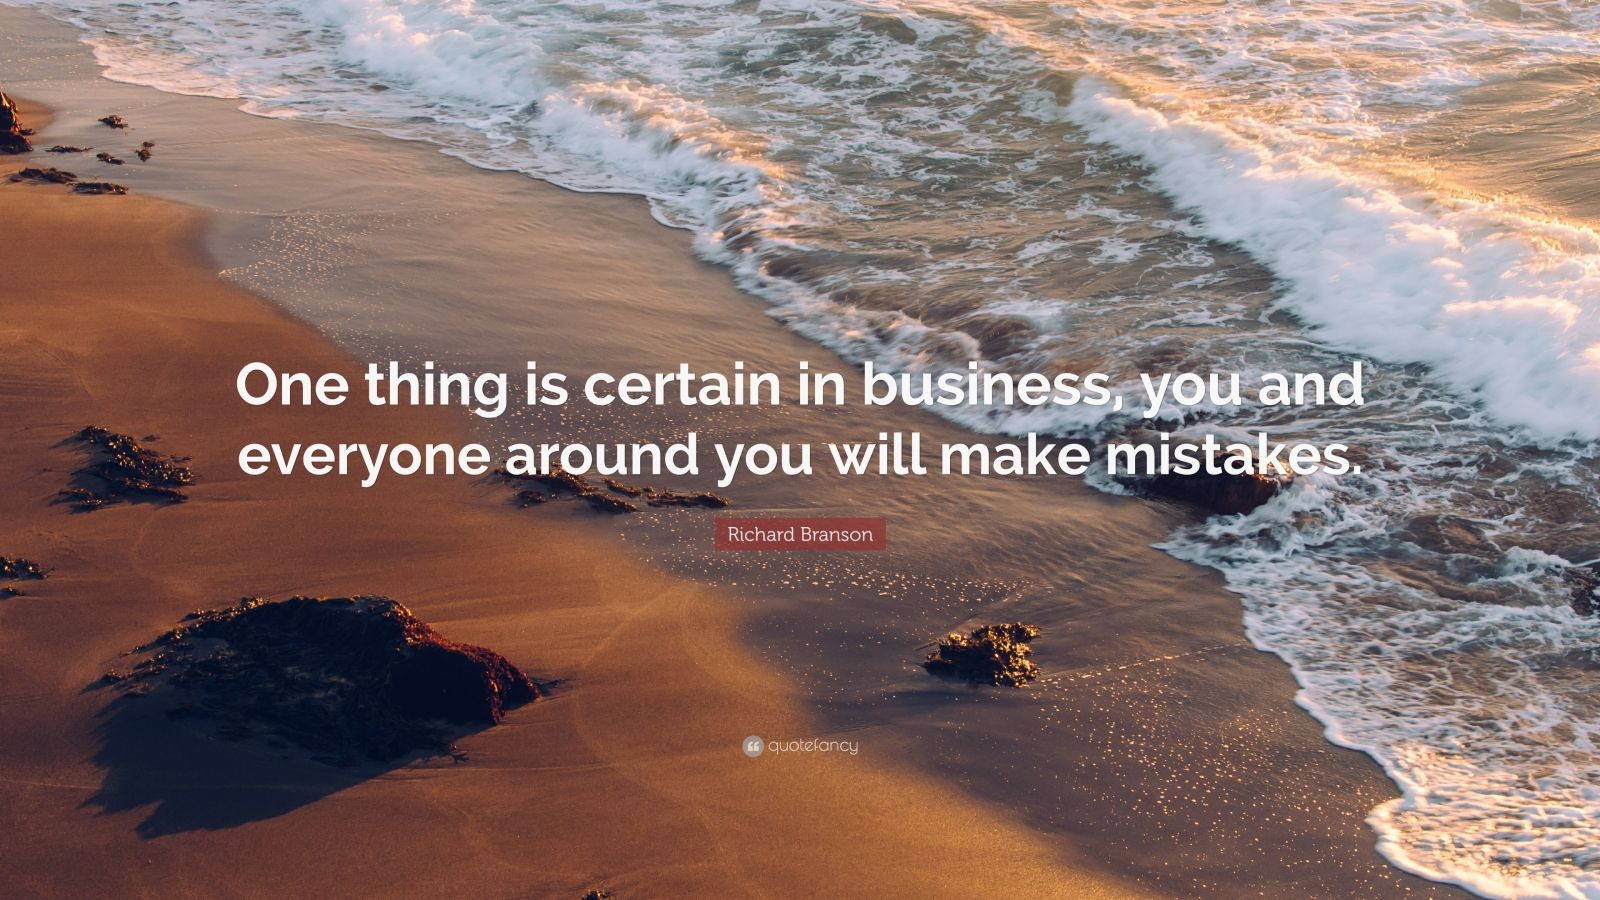 """Richard Branson Quote: """"One thing is certain in business, you and everyone around you will make mistakes."""""""